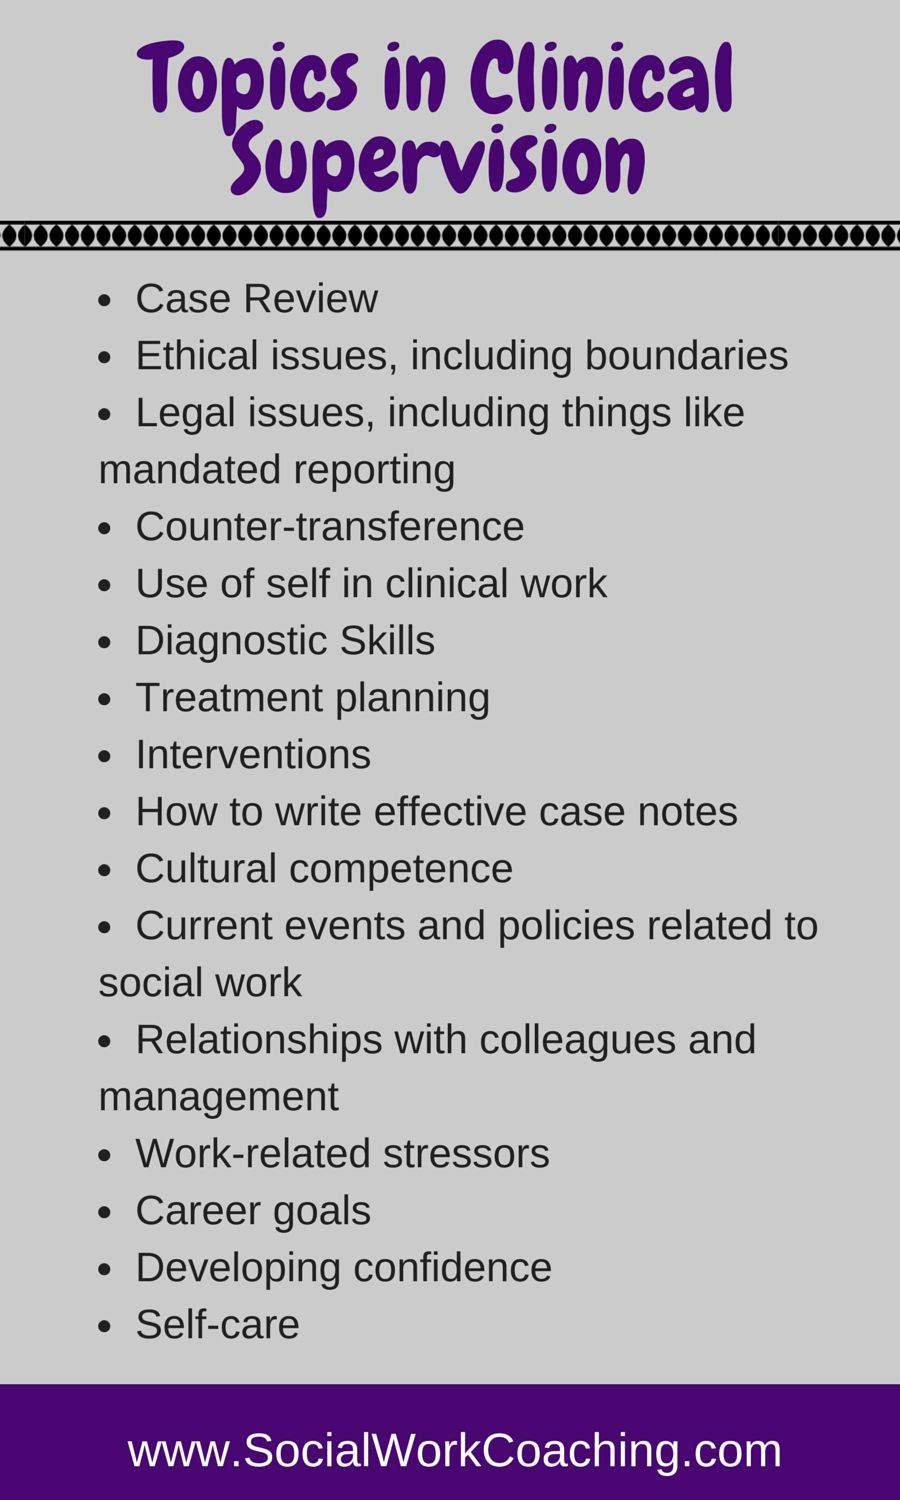 Topics in Clinical Supervision (can substitute social